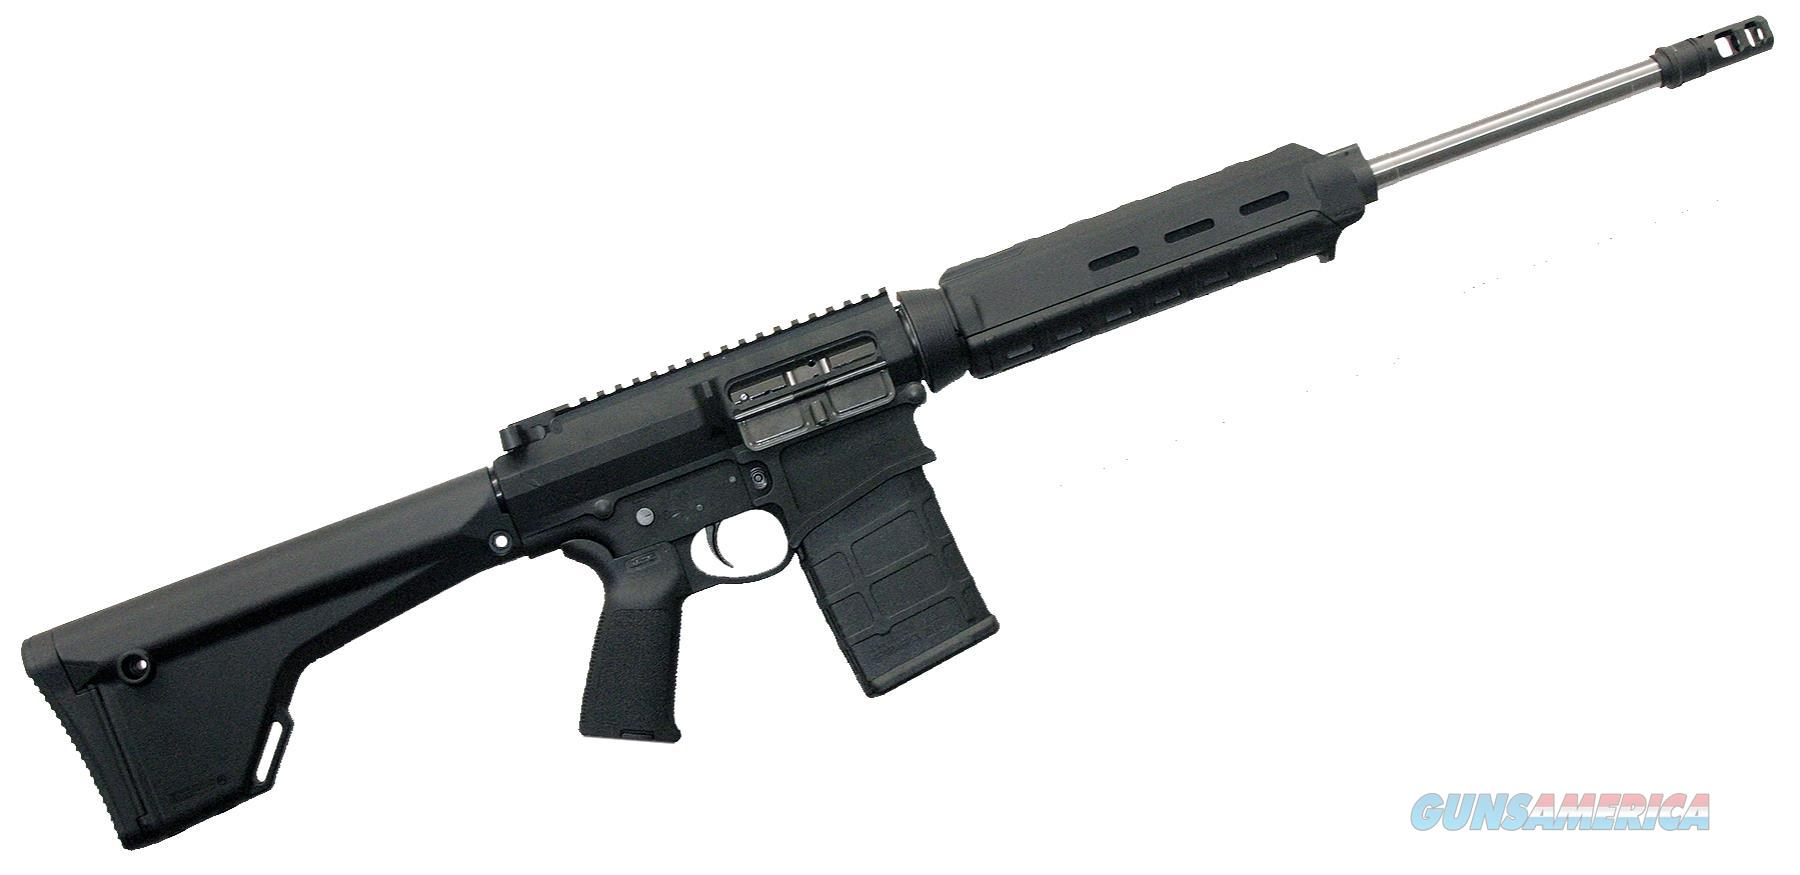 CORE15 CORE-30 MOE BLK 7.62 NATO 100546  Guns > Rifles > AR-15 Rifles - Small Manufacturers > Complete Rifle